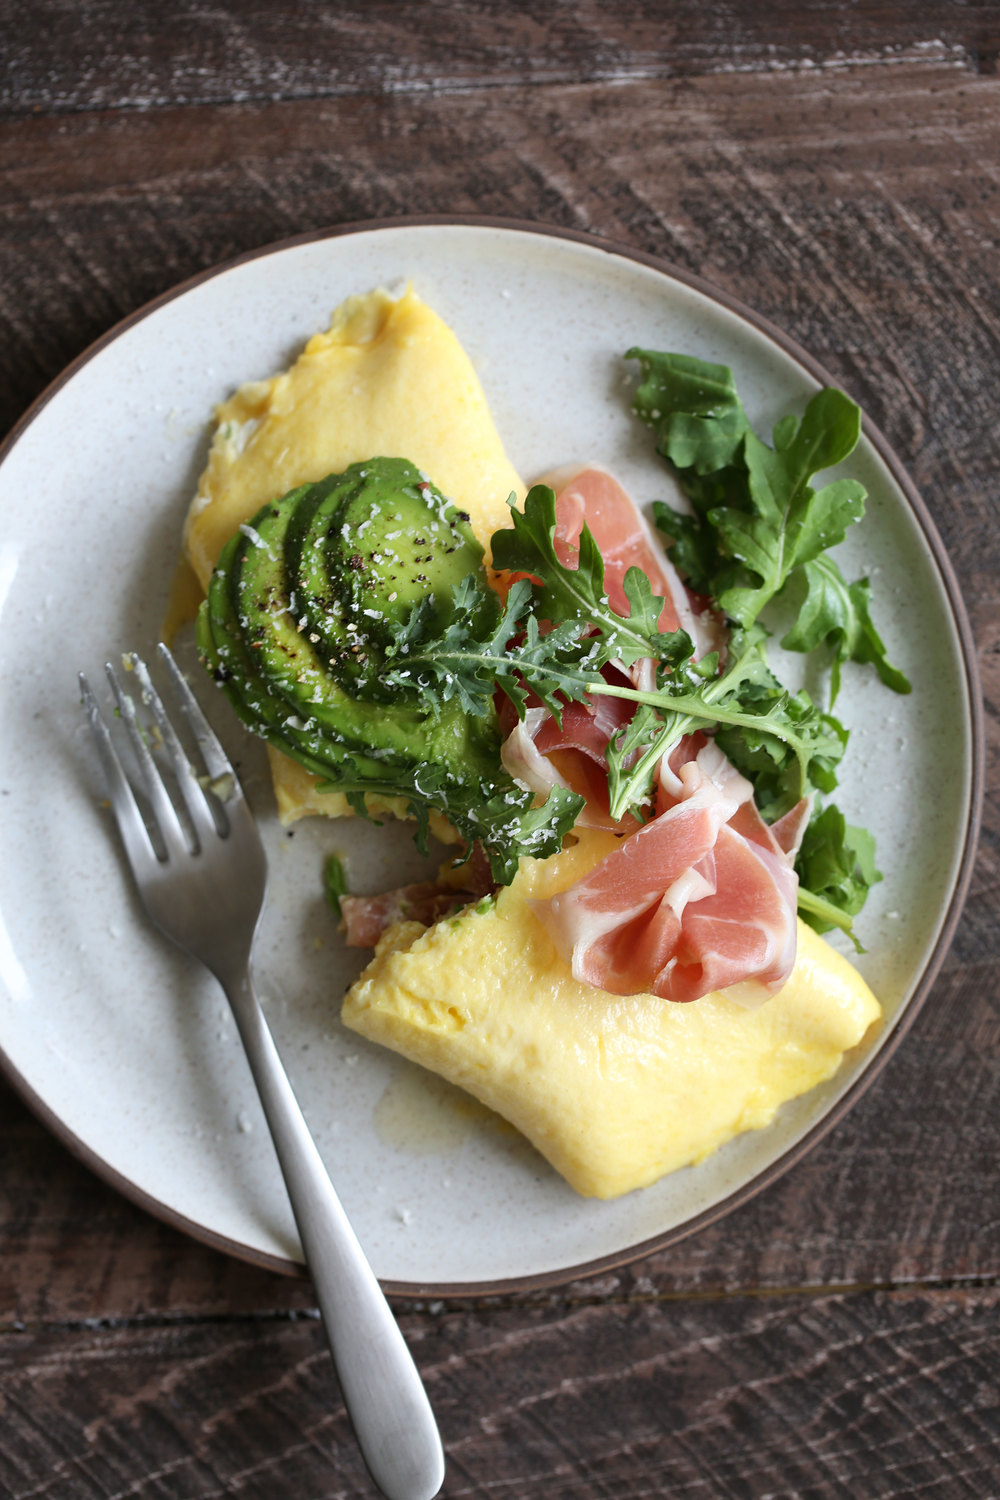 French Omelette with Prosciutto, Cheese Avocado & Arugula eaten